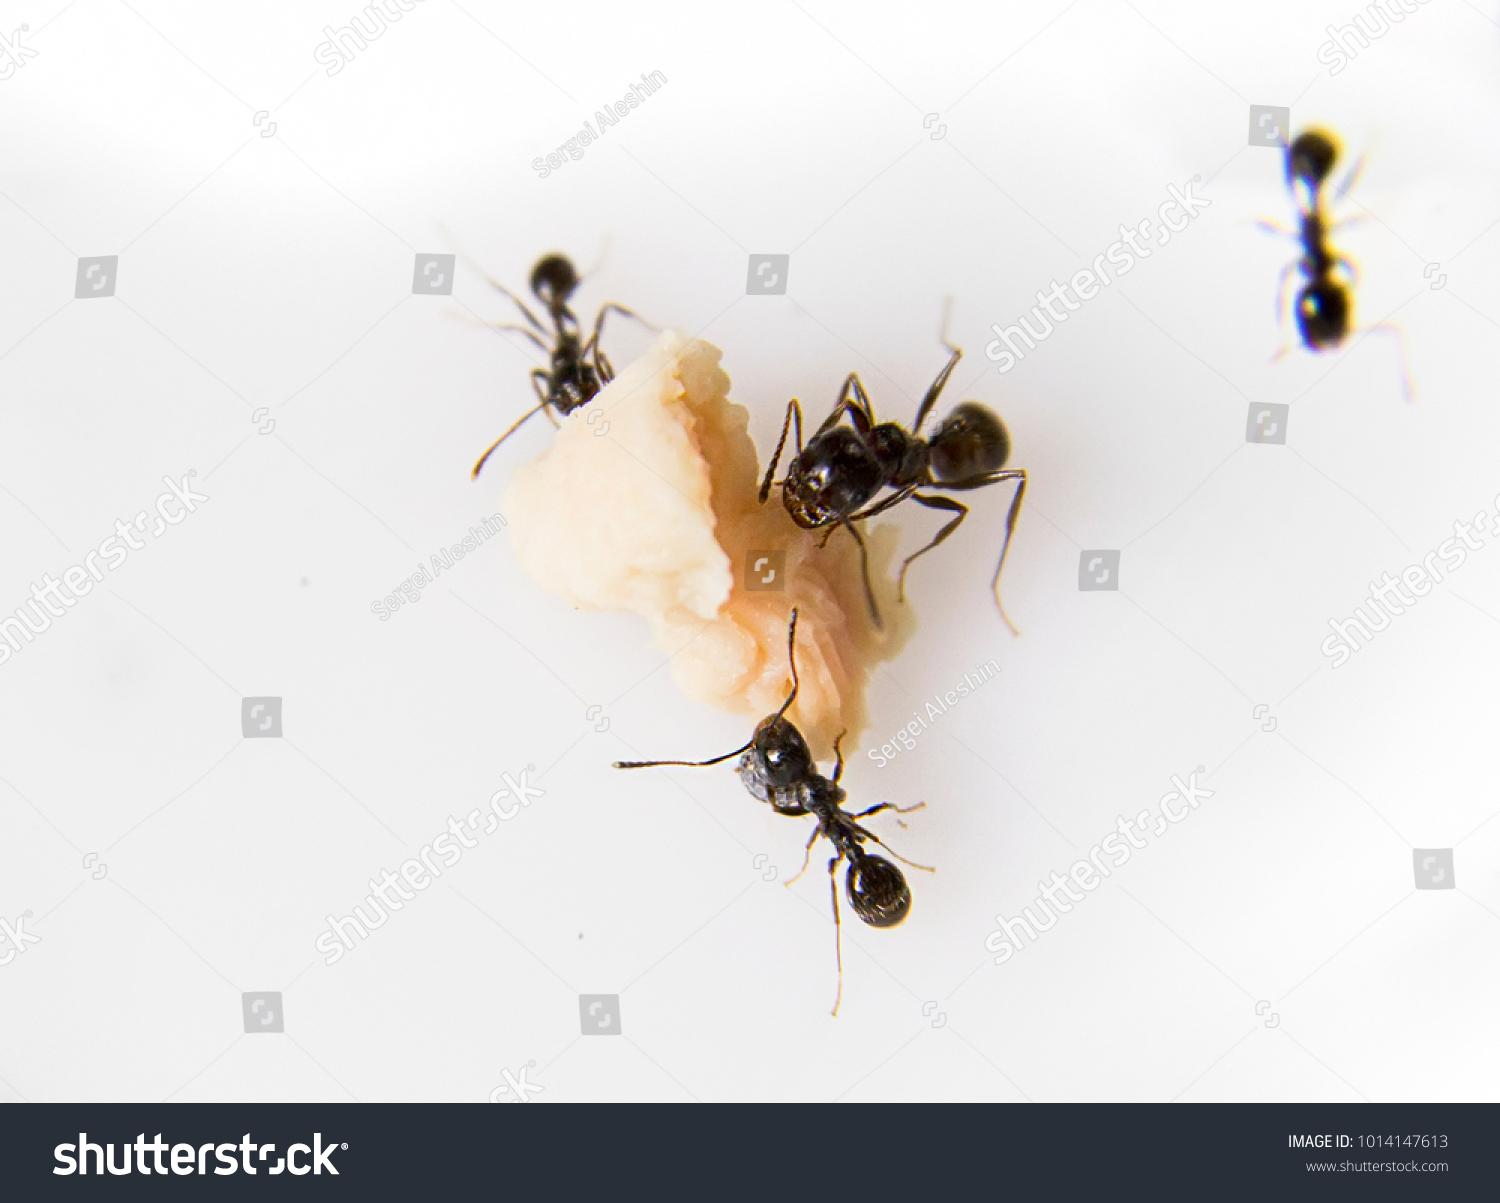 Ants Kitchen Black Ants On White Stock Photo (Royalty Free ...